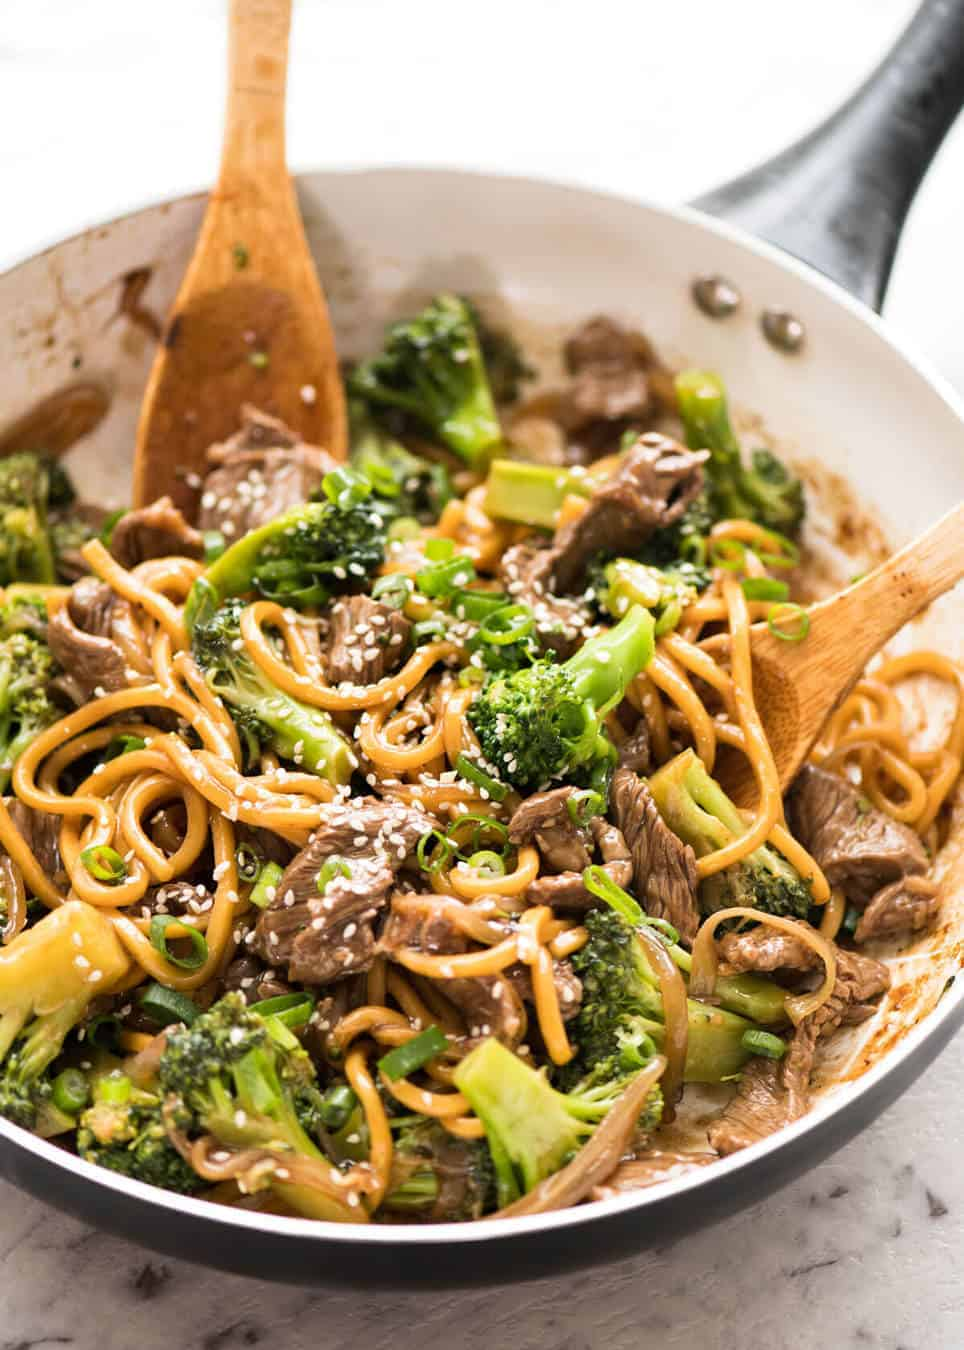 Chinese beef and broccoli noodles recipetin eats chinese beef and broccoli noodles everybodys favourite chinese beef and broccoli with noodles www forumfinder Choice Image